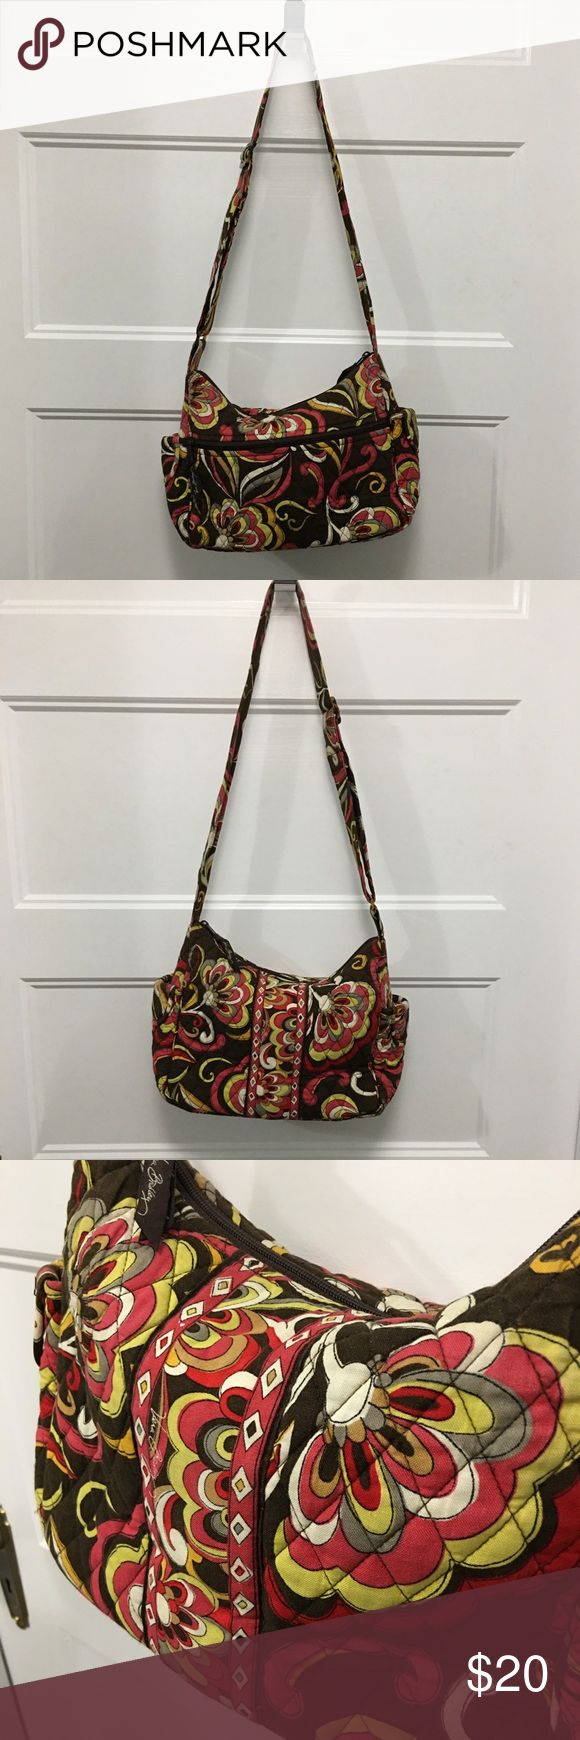 Vera Bradley handbag Beautiful Vera Bradley handbag. All zippers work great, no stains or odors. A small amount of paint gone on zipper pull(see picture). Browns, greens, and fushia. Adjustable shoulder strap. Vera Bradley Bags